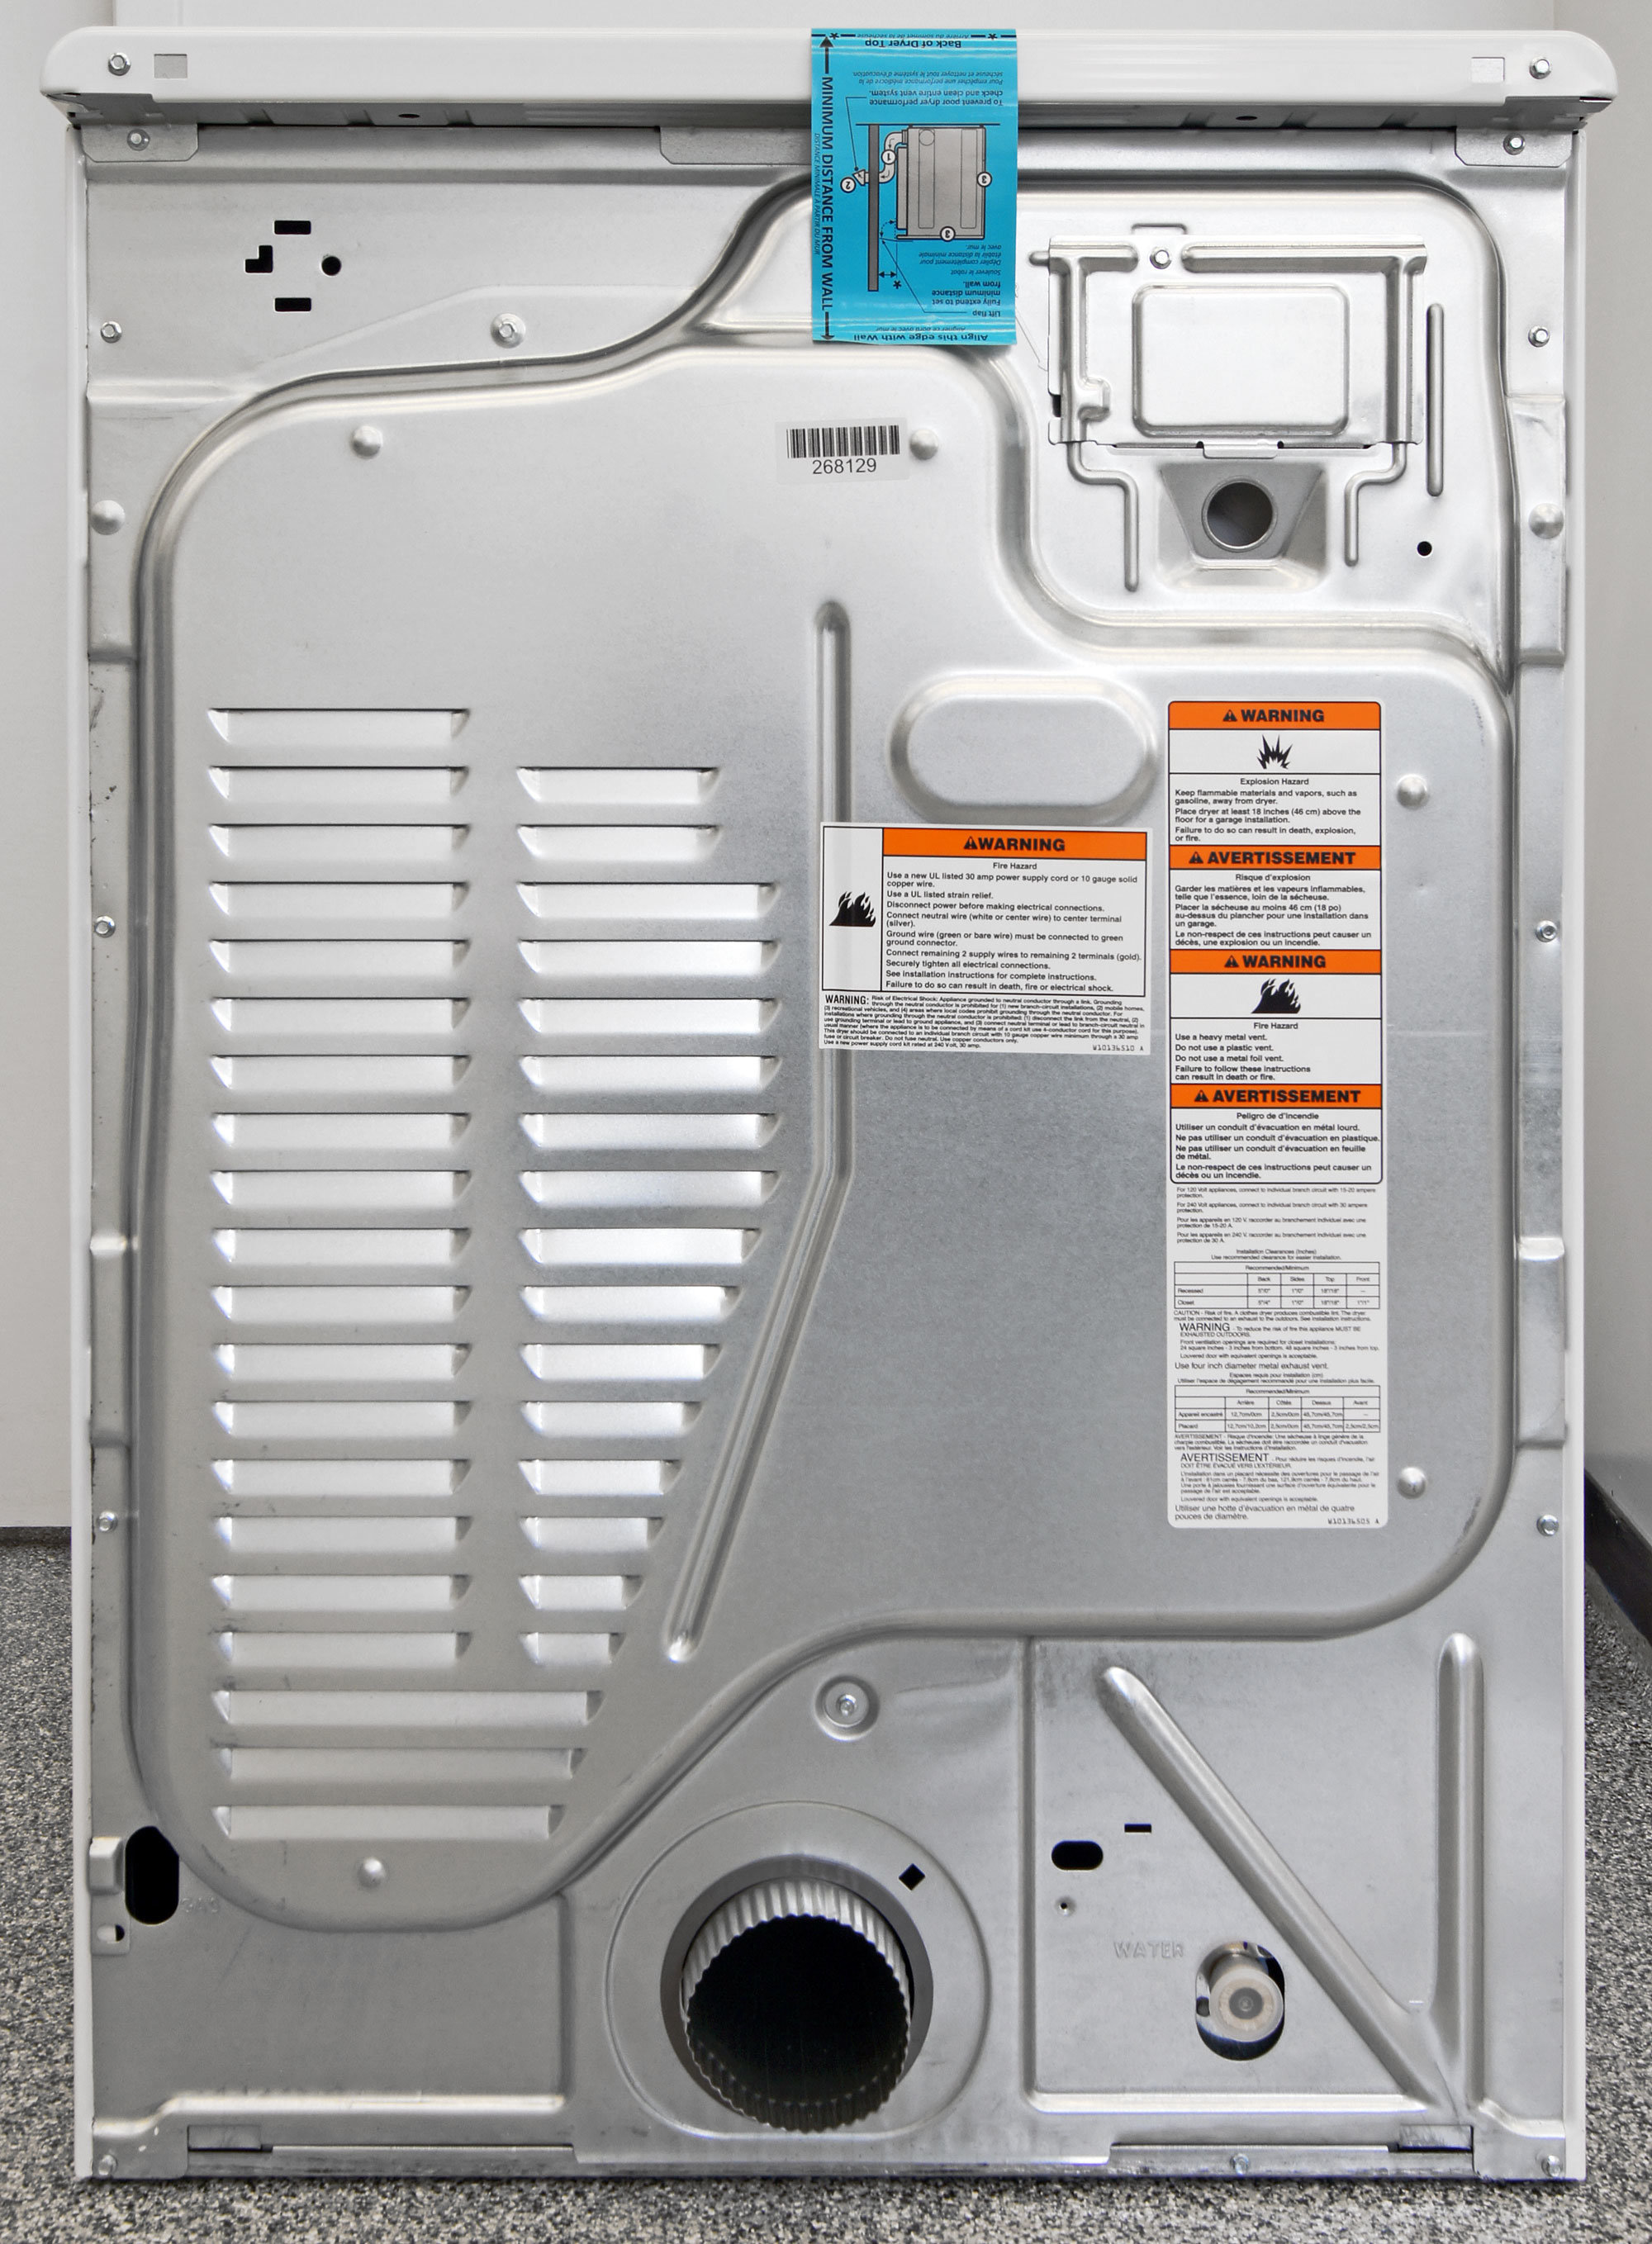 Pa Wiring Diagram besides 1t093q9 likewise T329558 Whirlpool gold ultimate care ii no heat likewise Appliance additionally 2016 Hyundai Sonata Overview C24889. on crosley wiring diagram